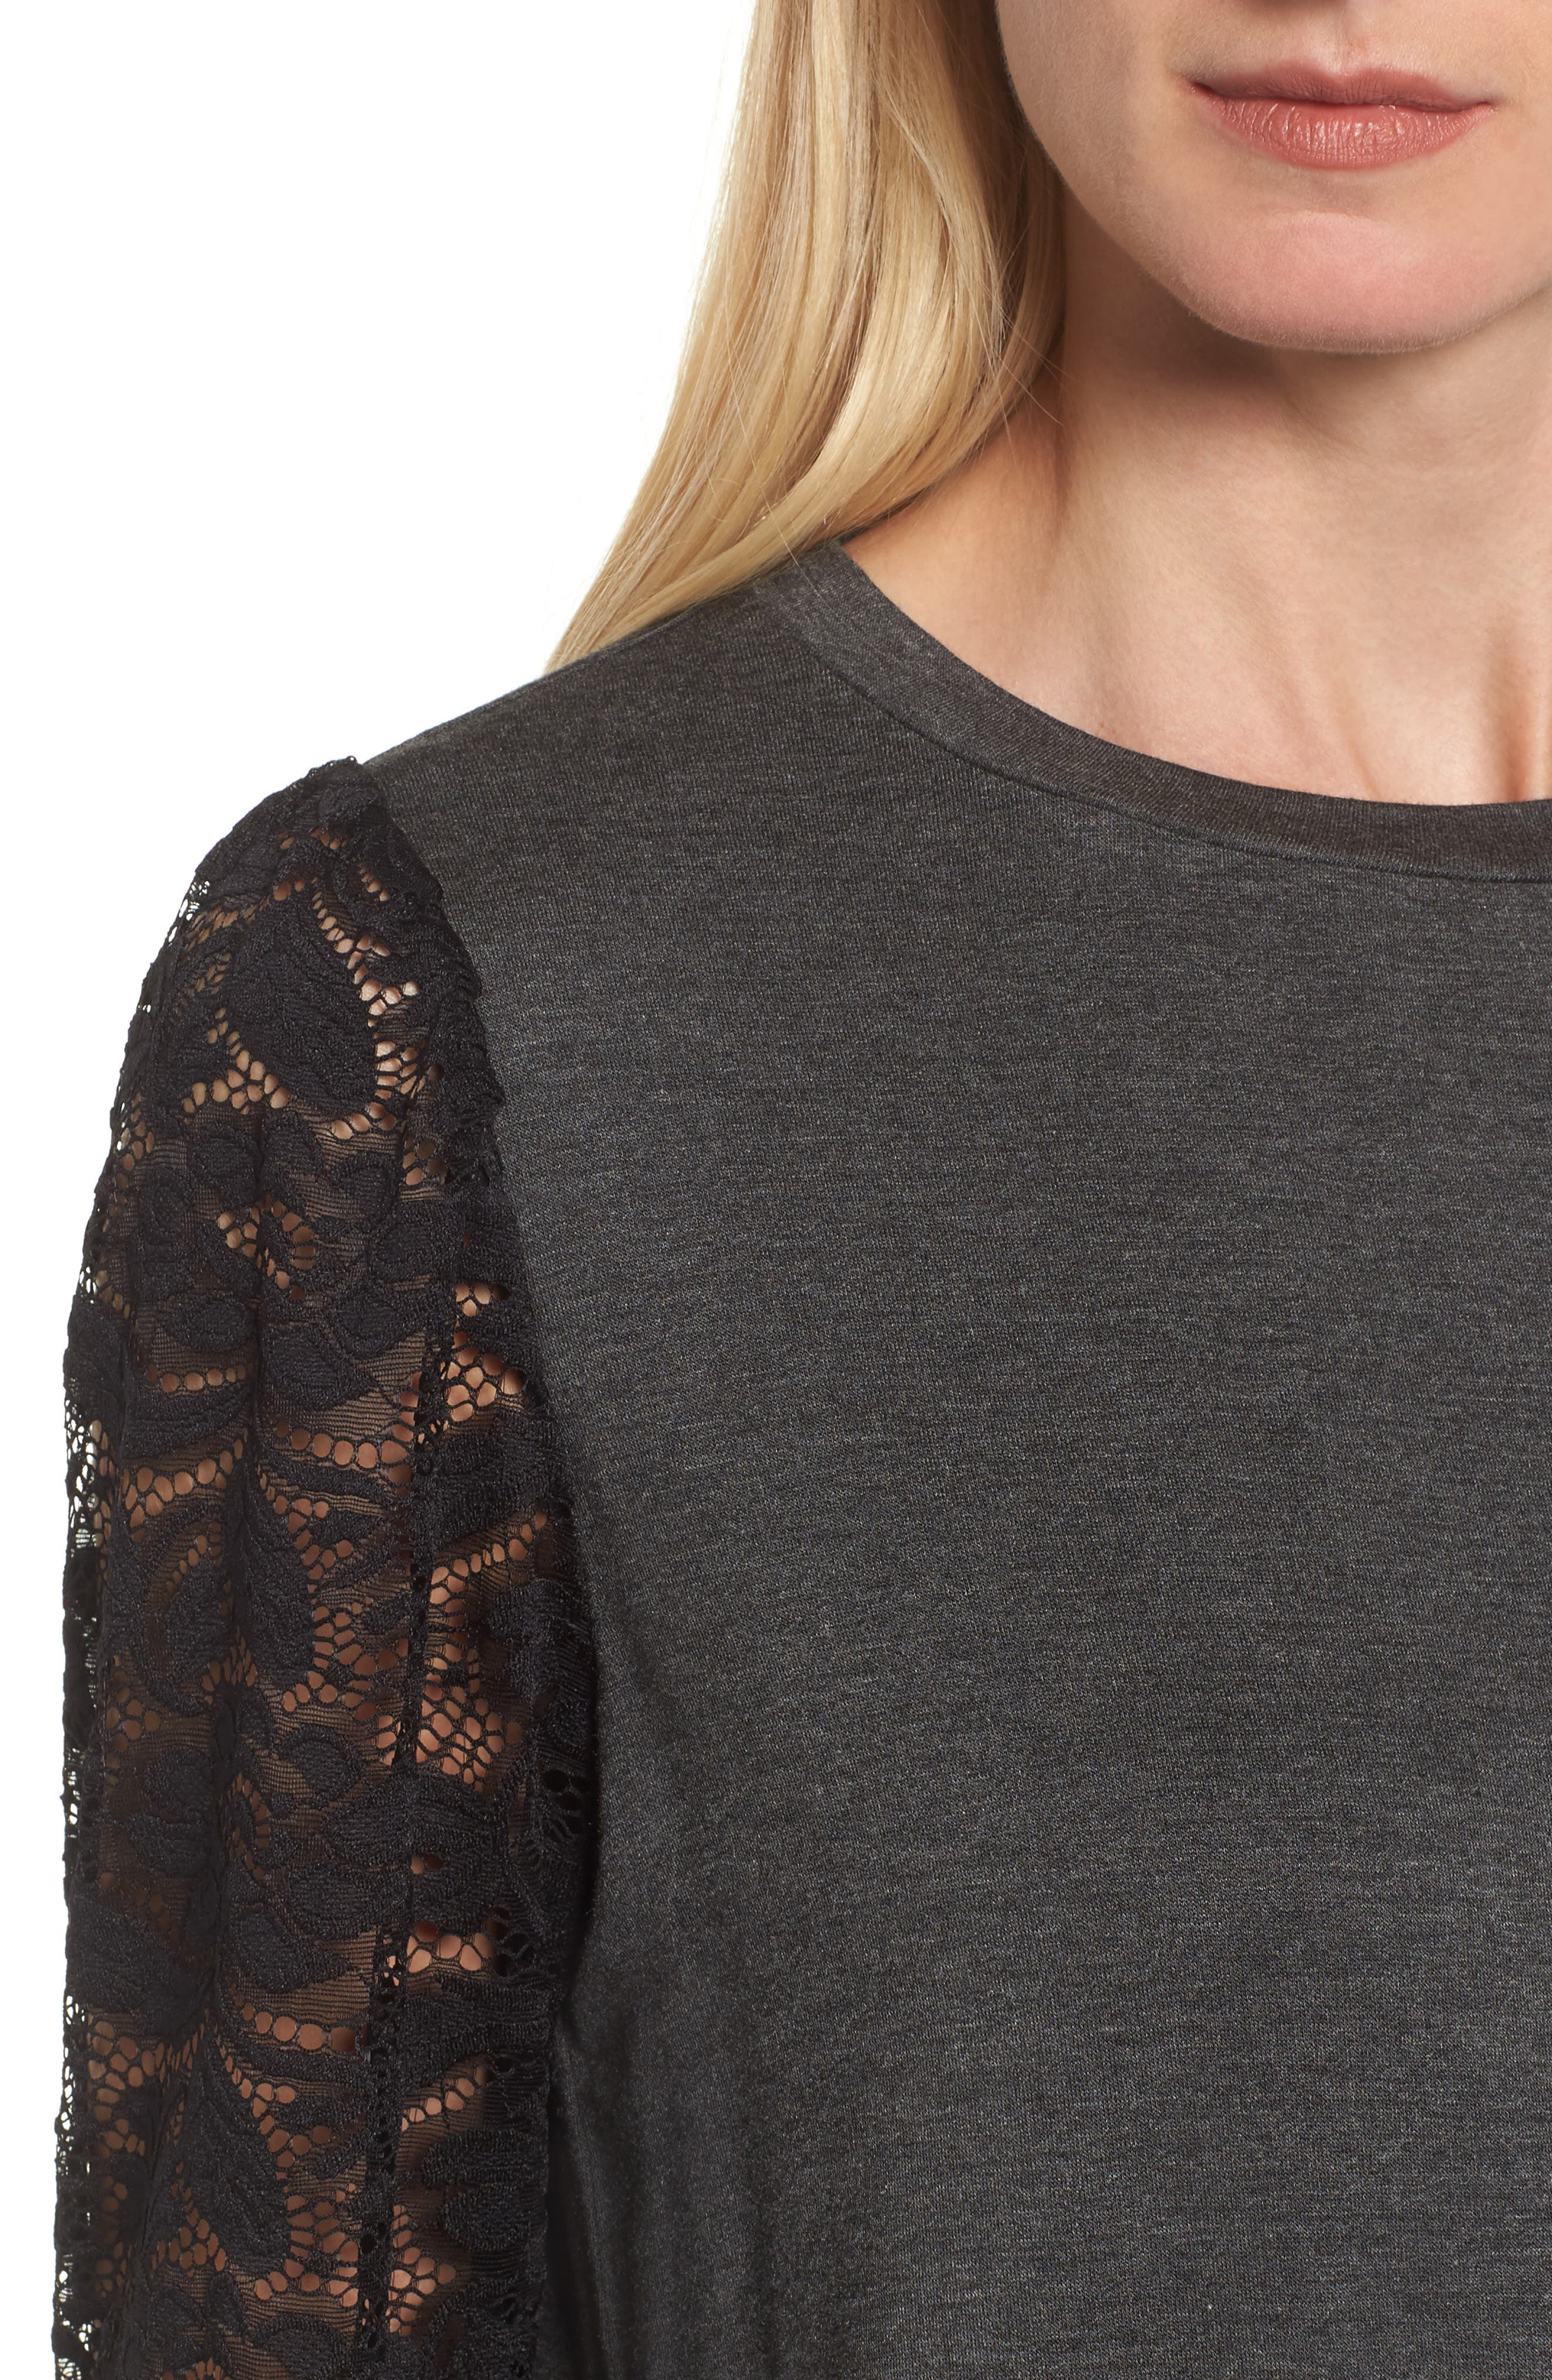 Lace Sleeve Sweatshirt,                             Alternate thumbnail 4, color,                             Dark Charcoal